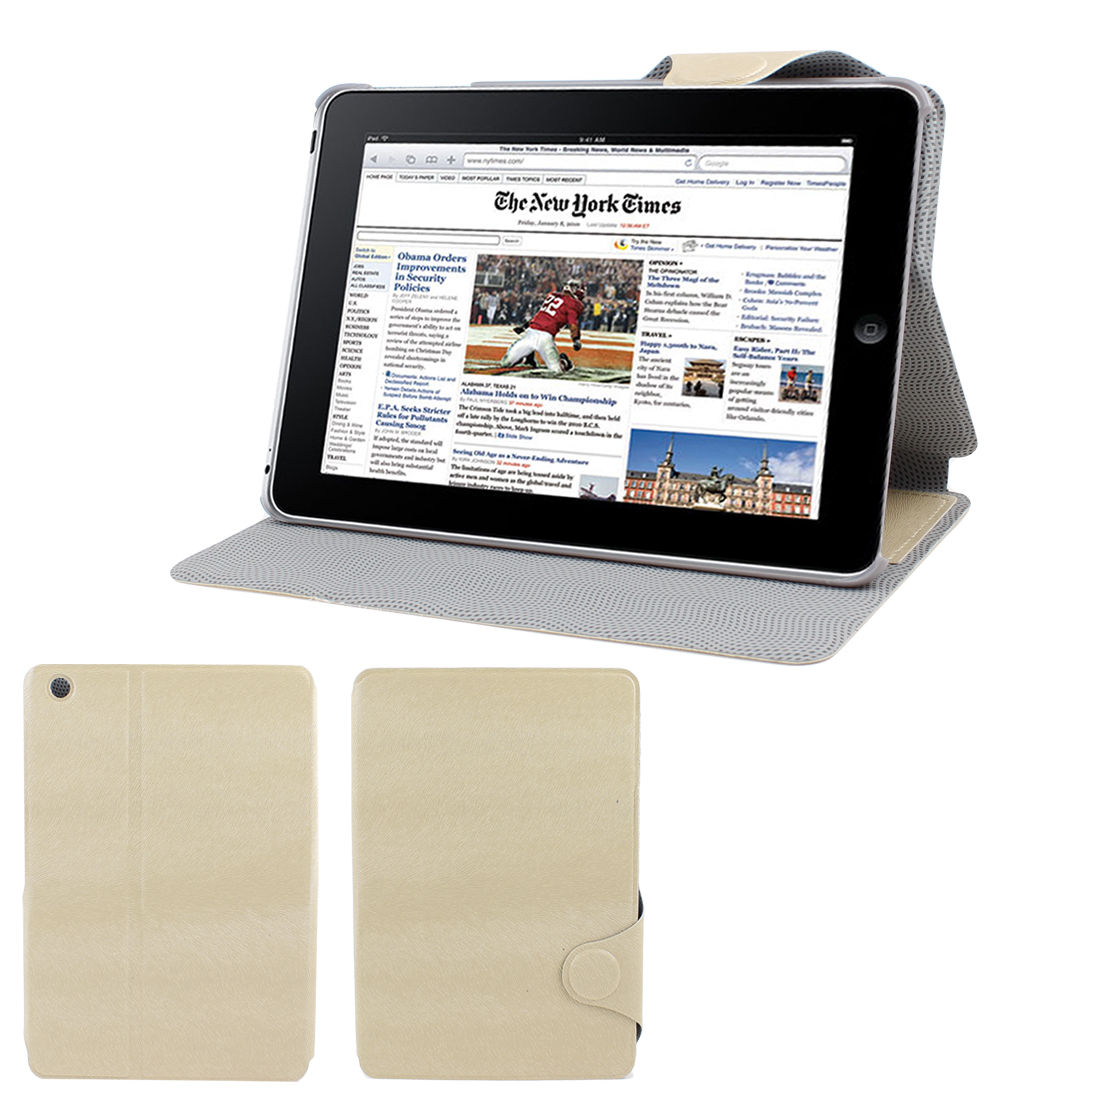 Khaki Faux Leather Flip Stand Case Cover Protector for Apple iPad Mini